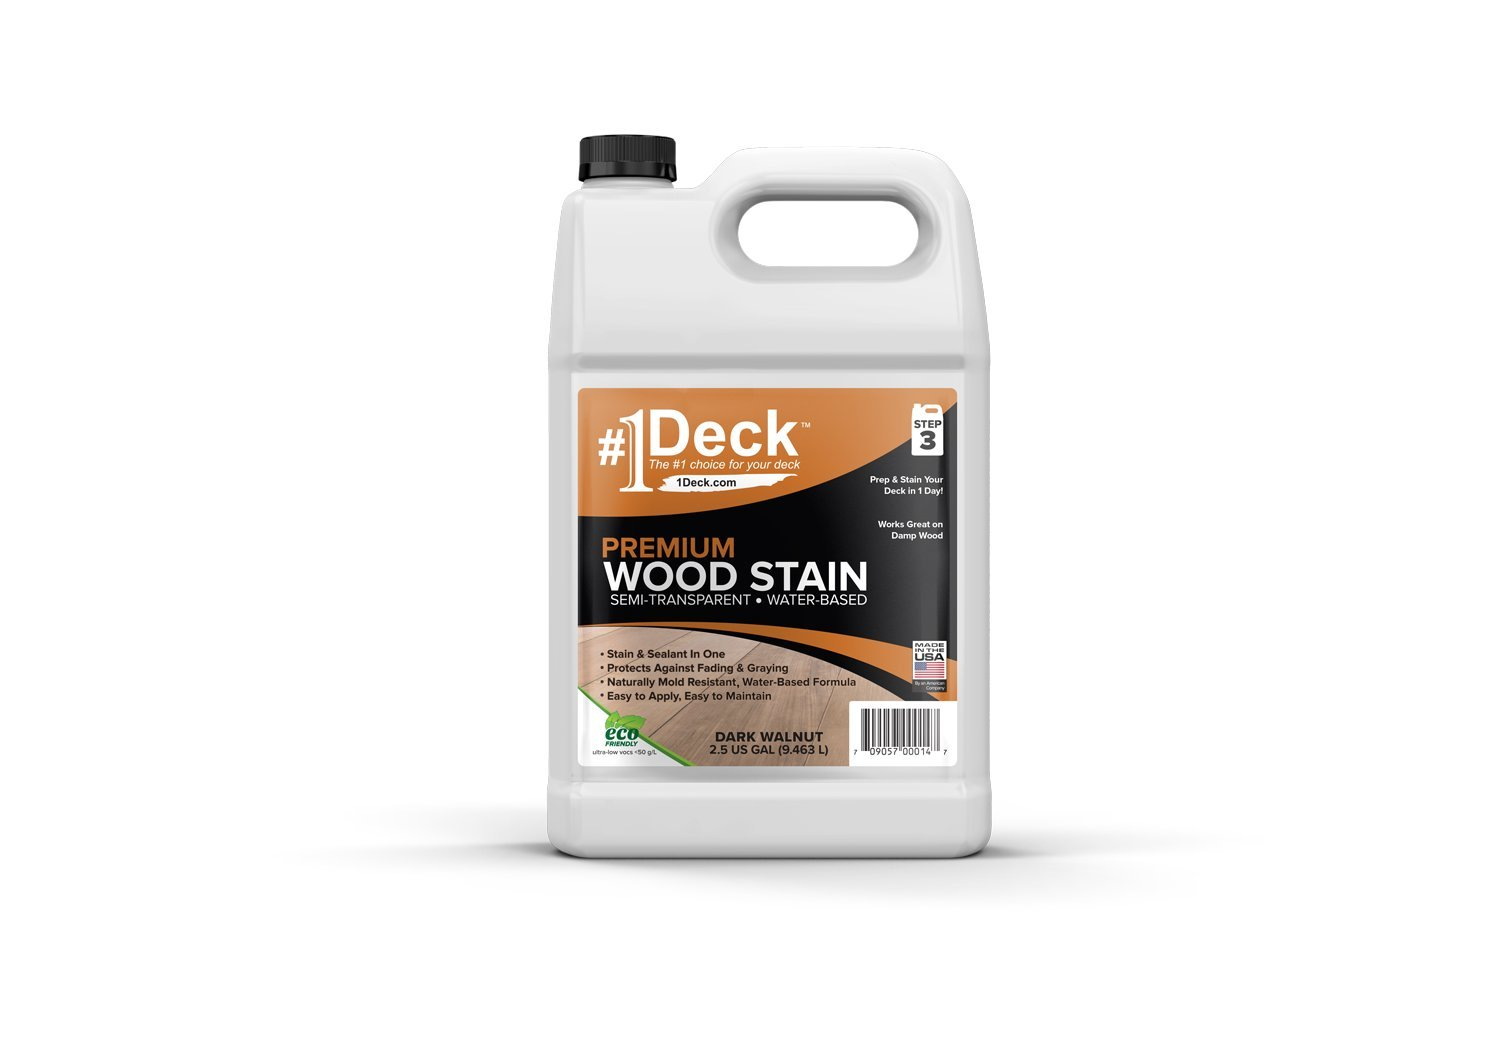 #1 Deck Premium Wood Stain for Decks, Fences, Siding (2.5 Gallon, Dark Walnut)